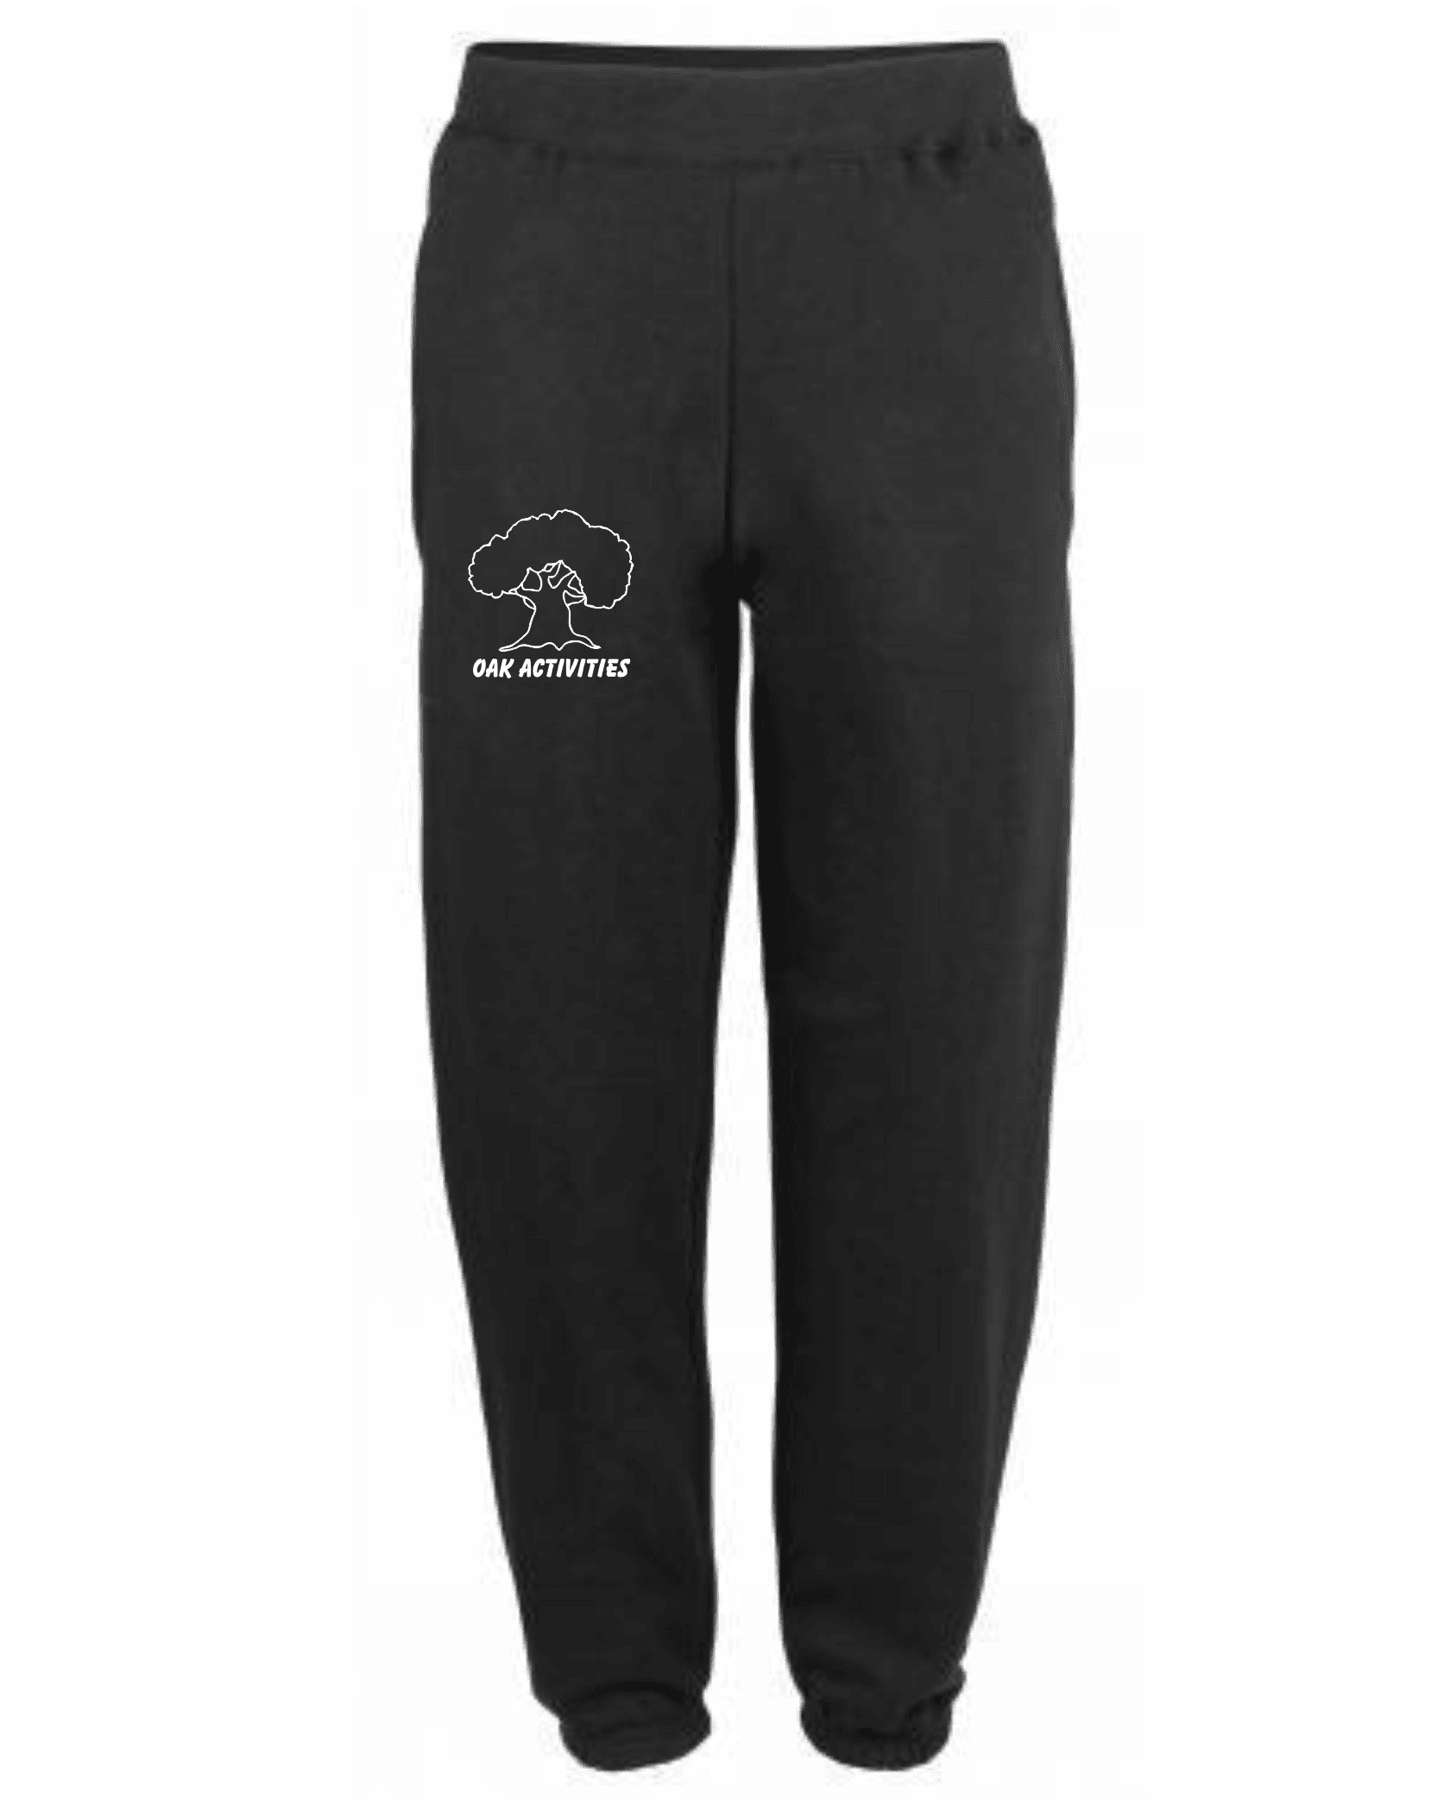 Oak Activities – Kids Tapered Track Pants (Black)